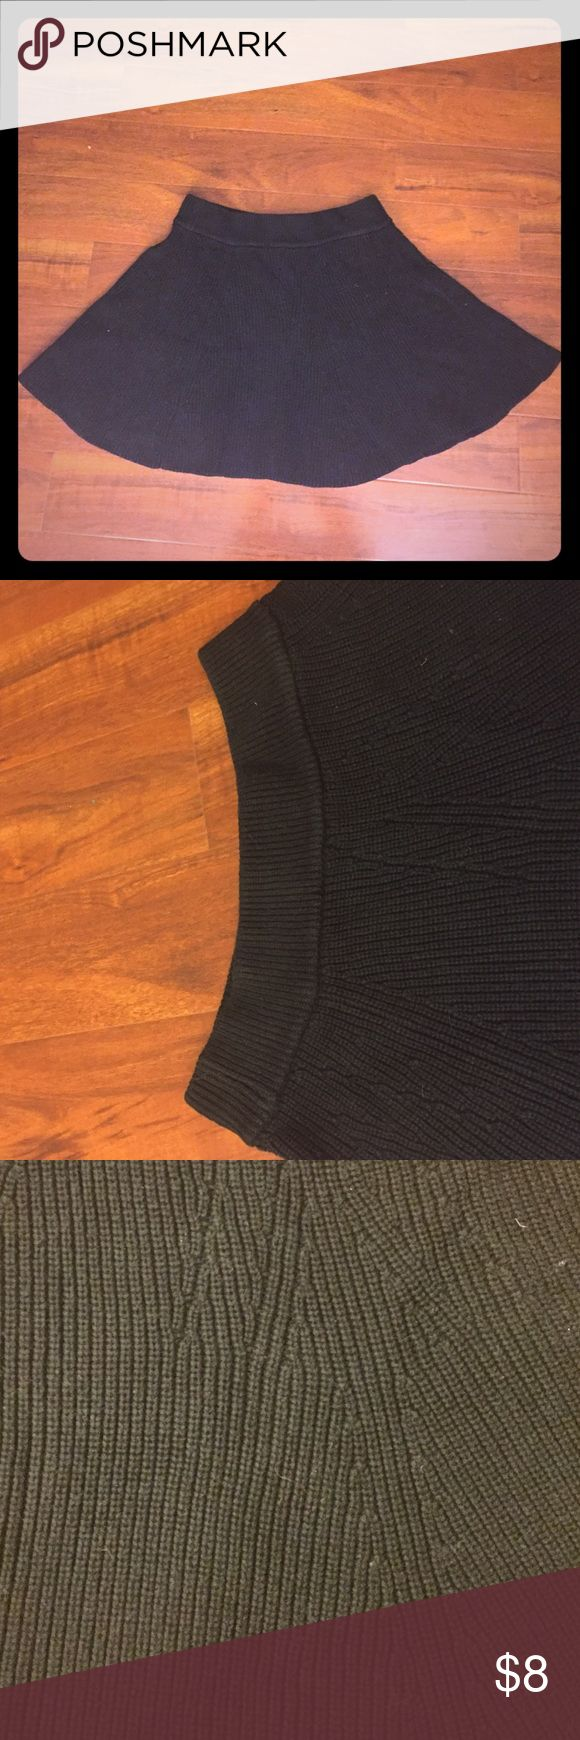 Gap XL Knitted Black Skirt I'm selling a black knitted skirt from Gap. Skirt has been warn a few times and is in good condition. Size on tag says XL so it may be best for women sized 16-18. Skirt waist is stretch, no buttons or zippers. Contact me with any questions! GAP Skirts